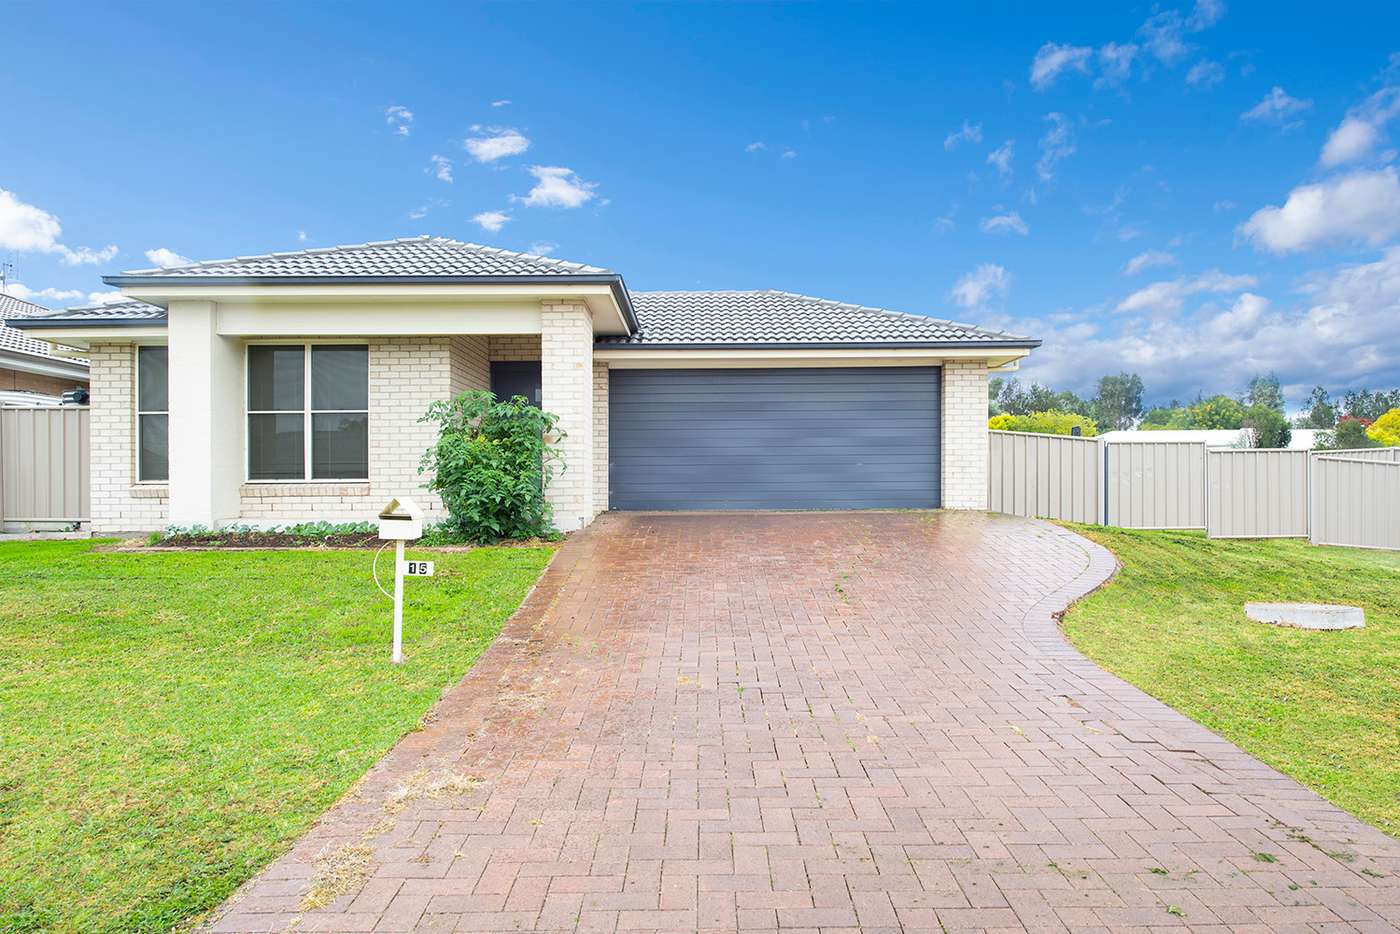 Main view of Homely house listing, 15 Pendula Way, Denman NSW 2328